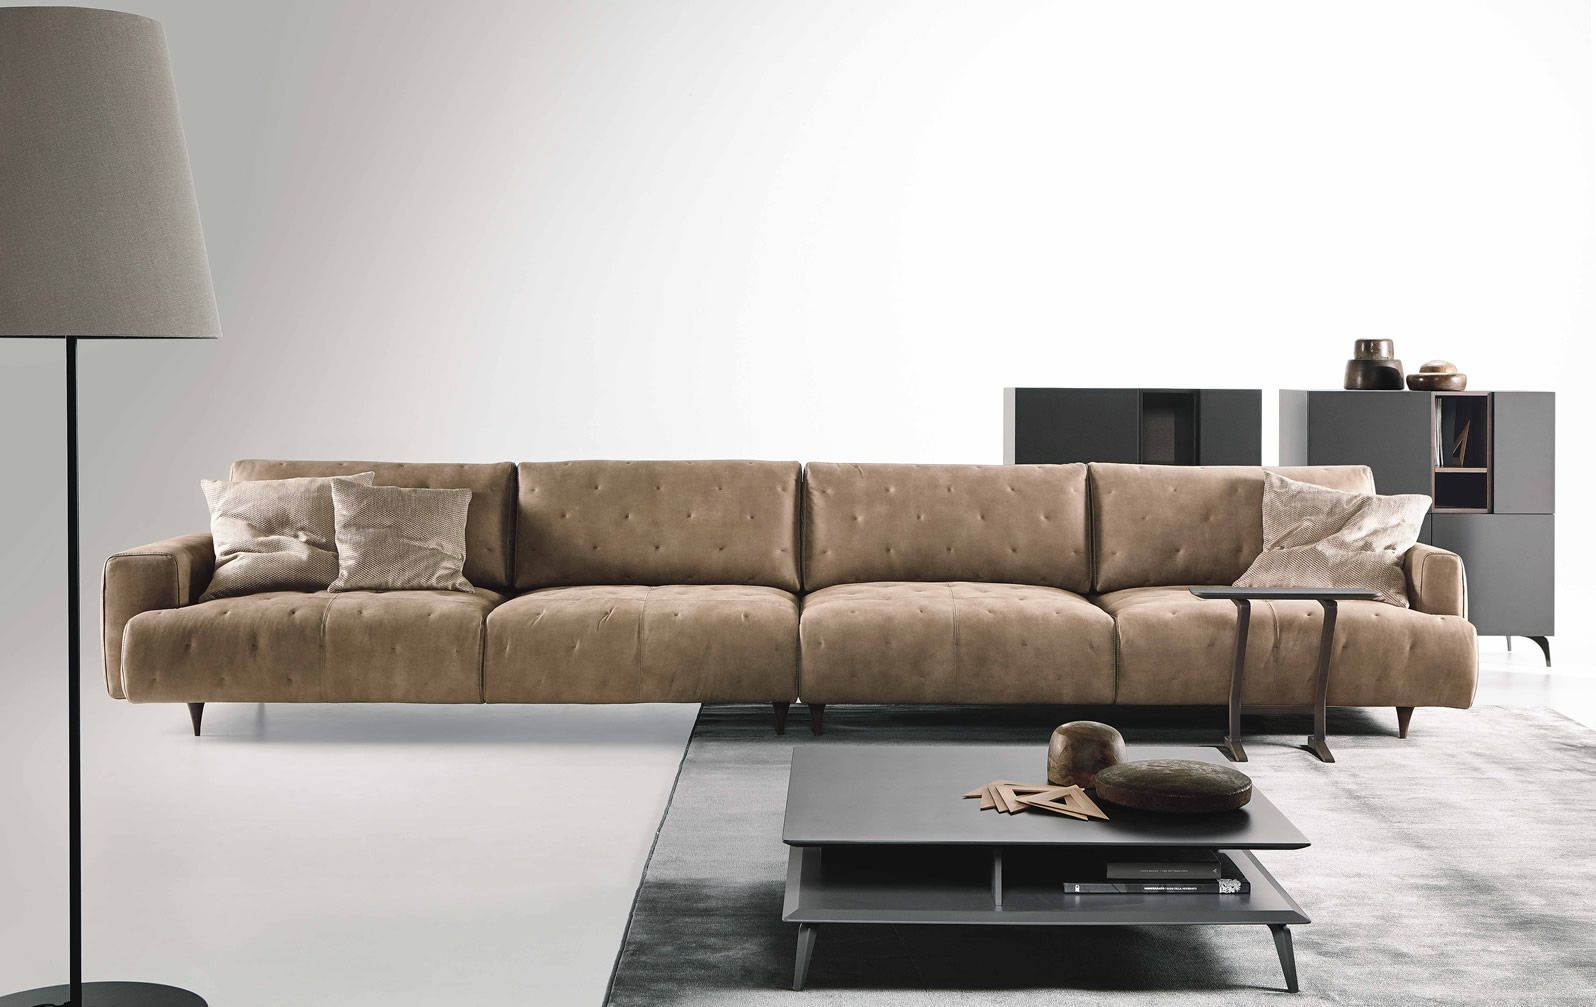 Ecl ctico from the new ditre italia collection in leather for Ditre italia